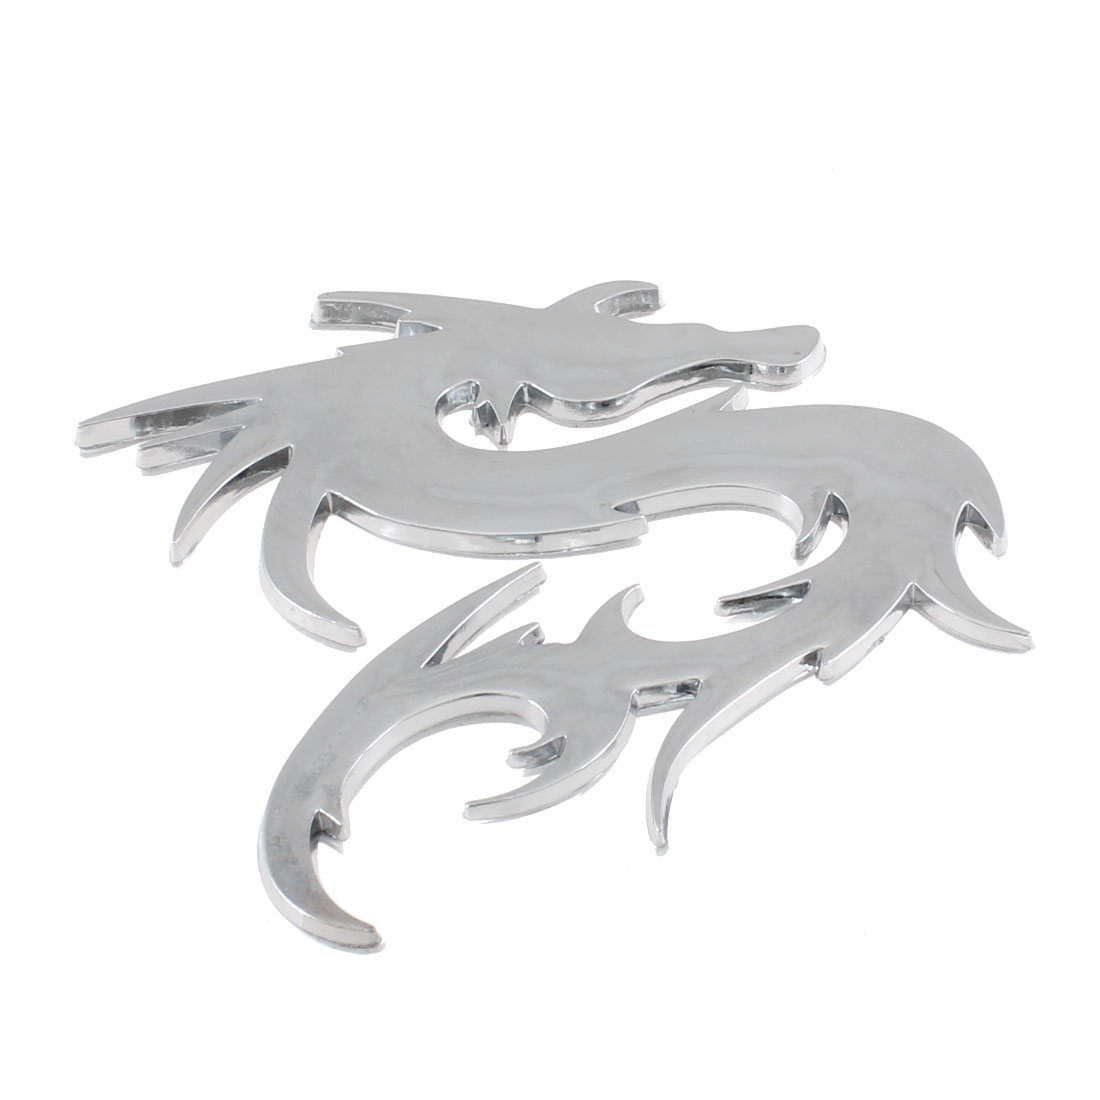 Chrome Plate Plastic Dragon Style Automobile Truck Decal Sticker